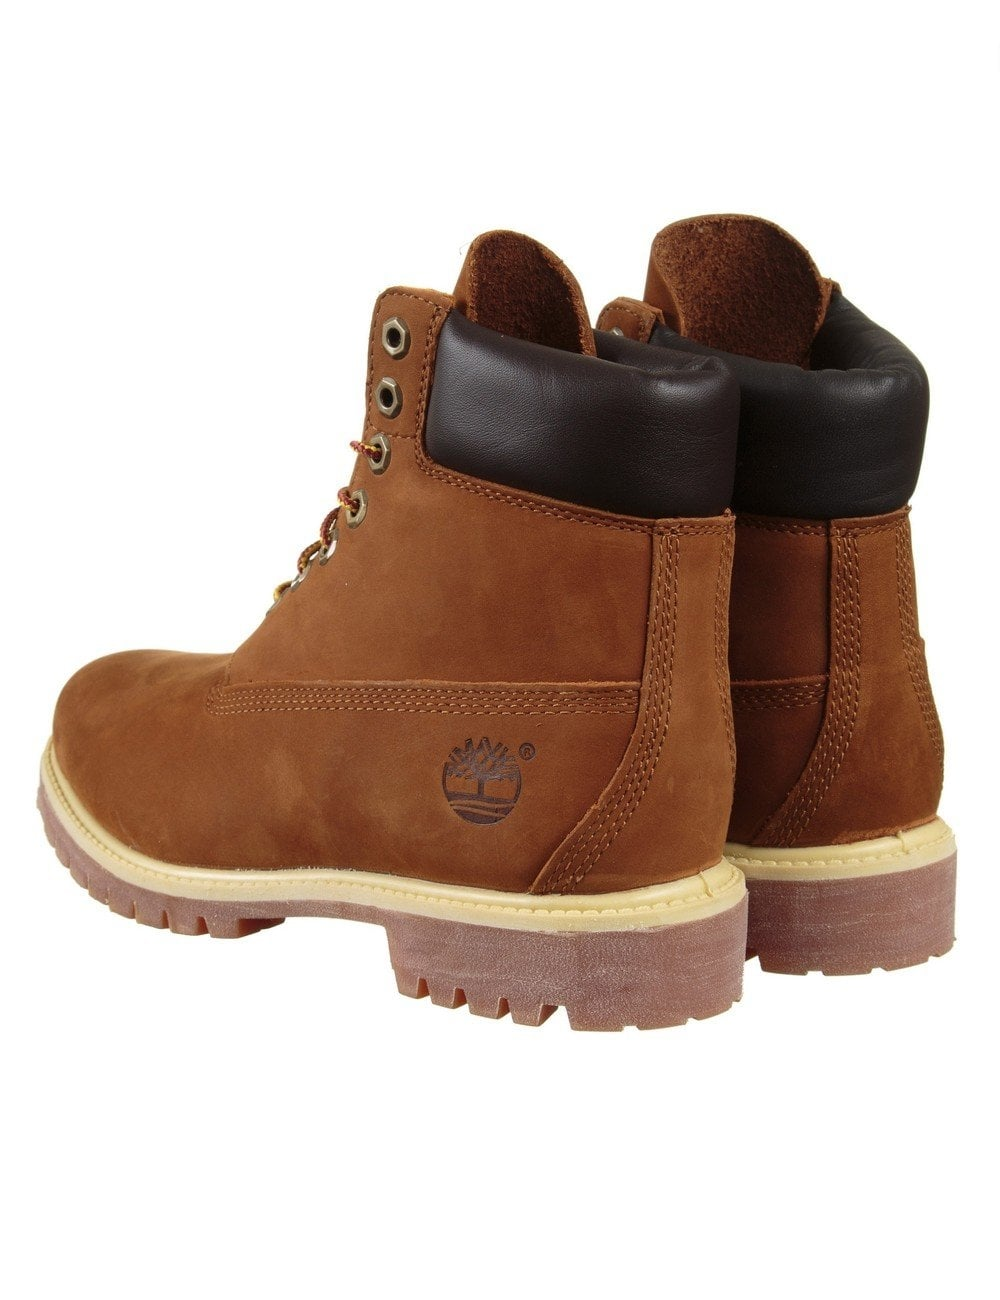 a8c45adbf1a1 Timberland 6-inch Premium Waterproof Boot - Rust Orange - Shoes ...